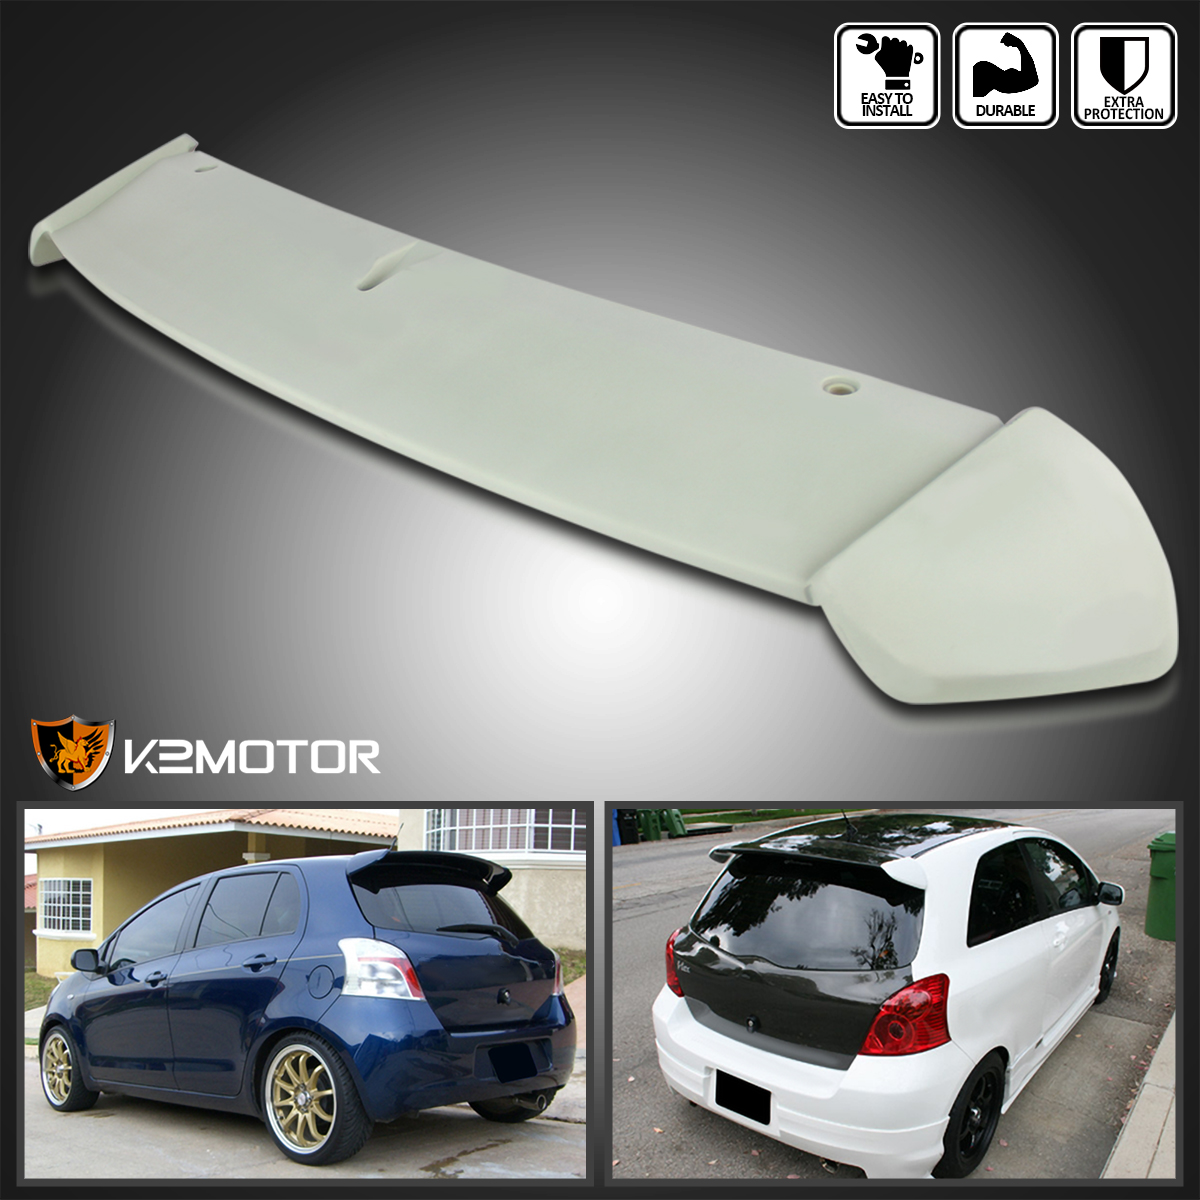 2011 Toyota Yaris Suspension: For 2006-2011 Toyota Yaris Hatchback ABS Factory Rear Roof